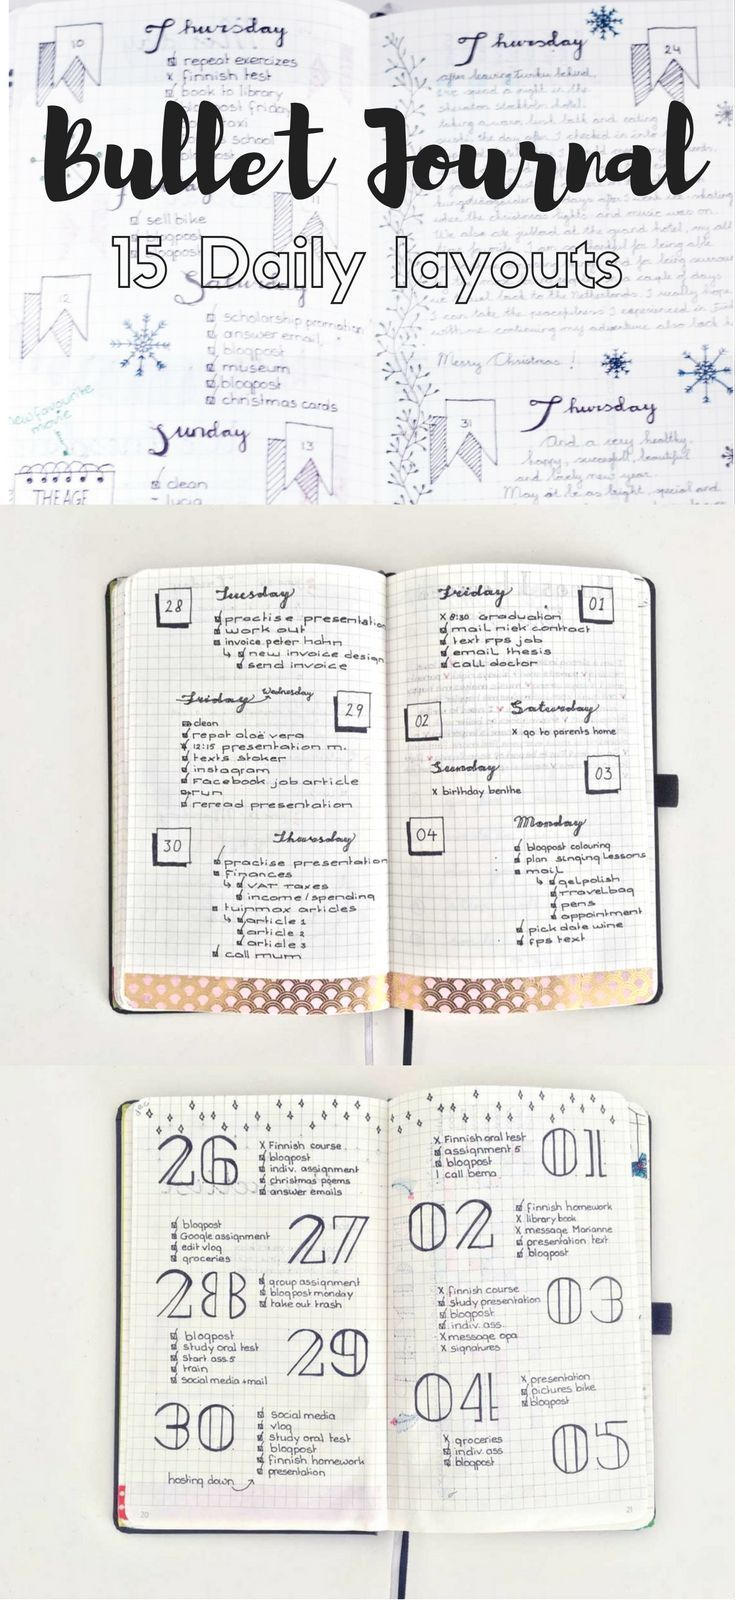 383 best agenda images on Pinterest | Doodles, A level art and All alone